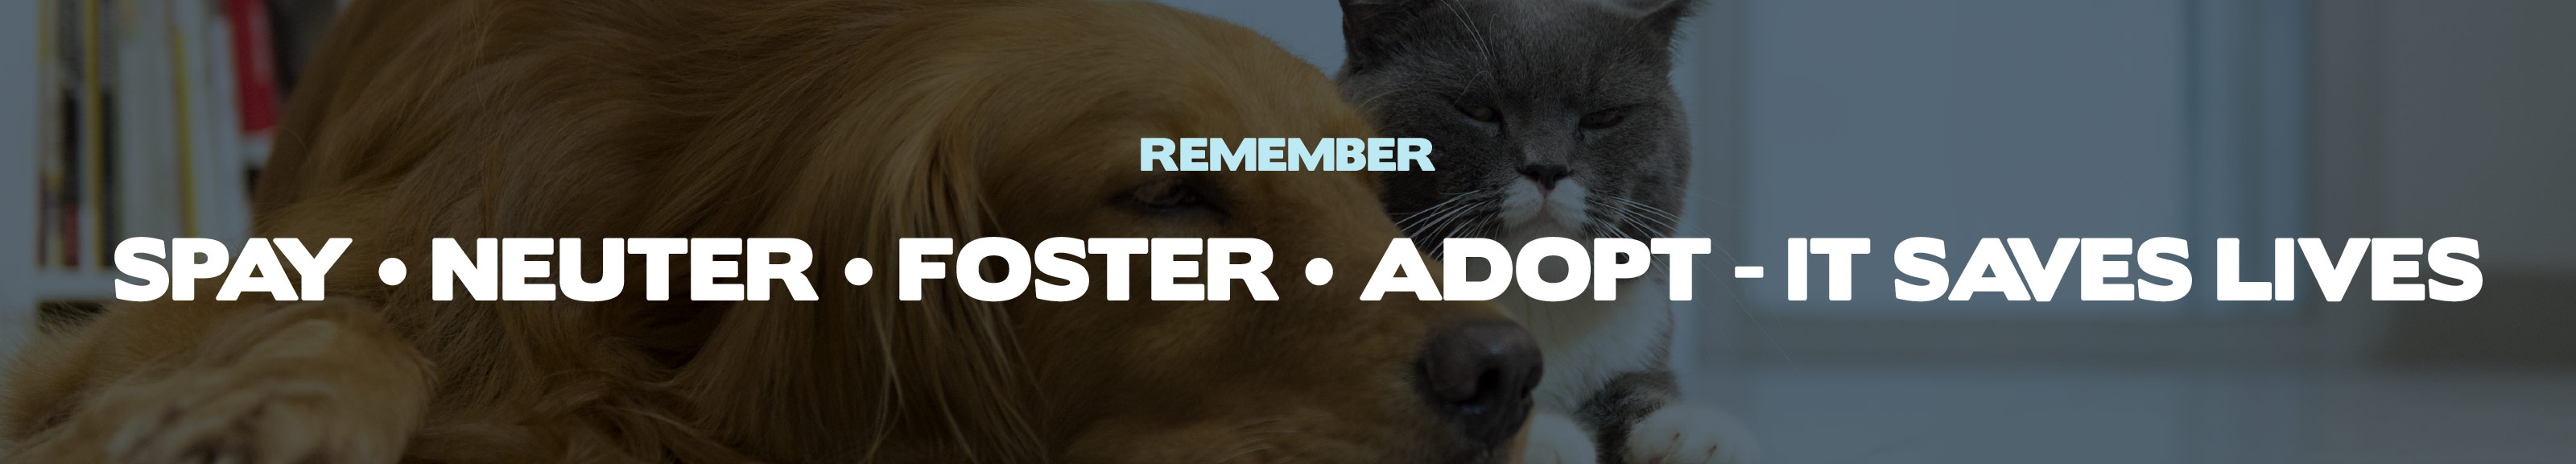 REMEMBER: SPAY • NEUTER • FOSTER • ADOPT - IT SAVES LIVES